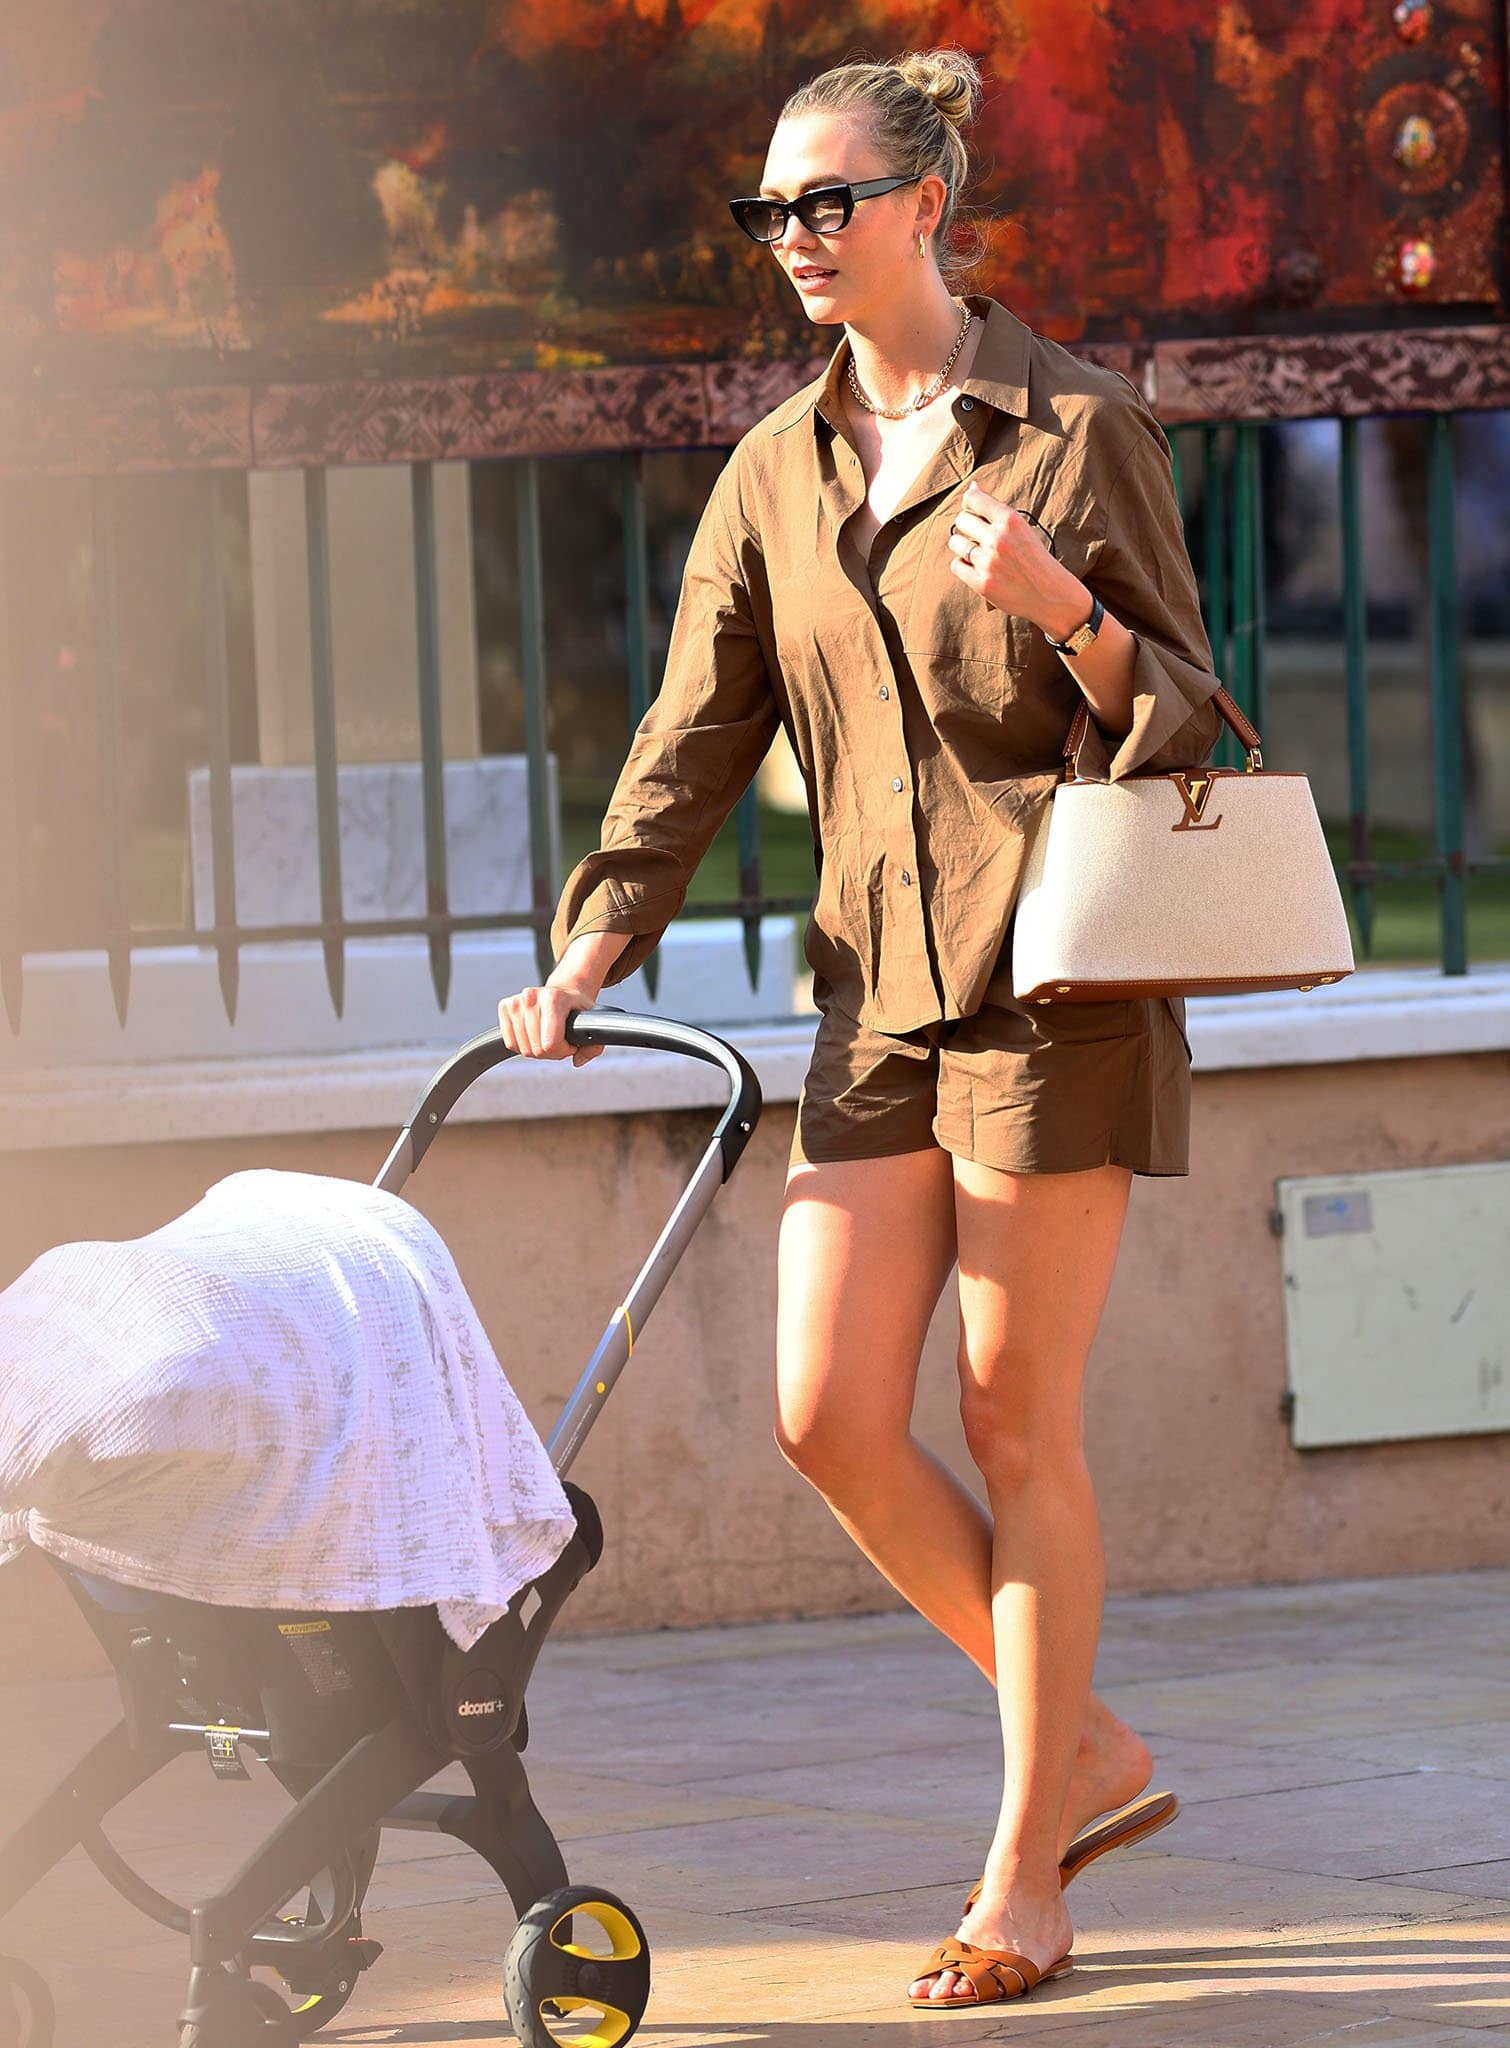 Karlie Kloss flaunts endless legs in trendy brown co-ords from The Frankie Shop